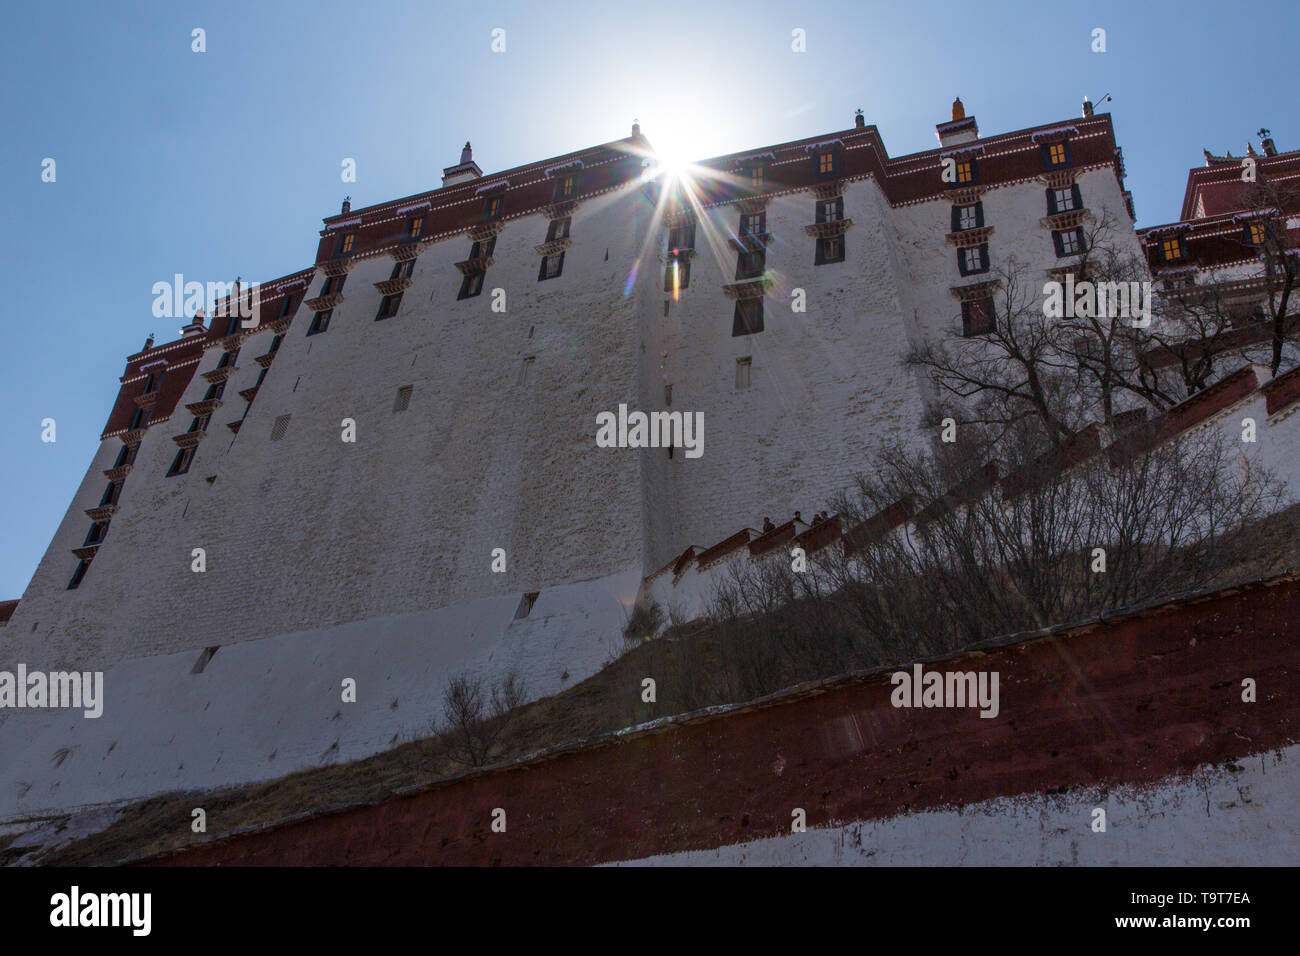 The Potala Palace was founded about 1645 A.D. and was the former summer palace of the Dalai Lama and is a part of the Historic Ensemble of the Potala  - Stock Image